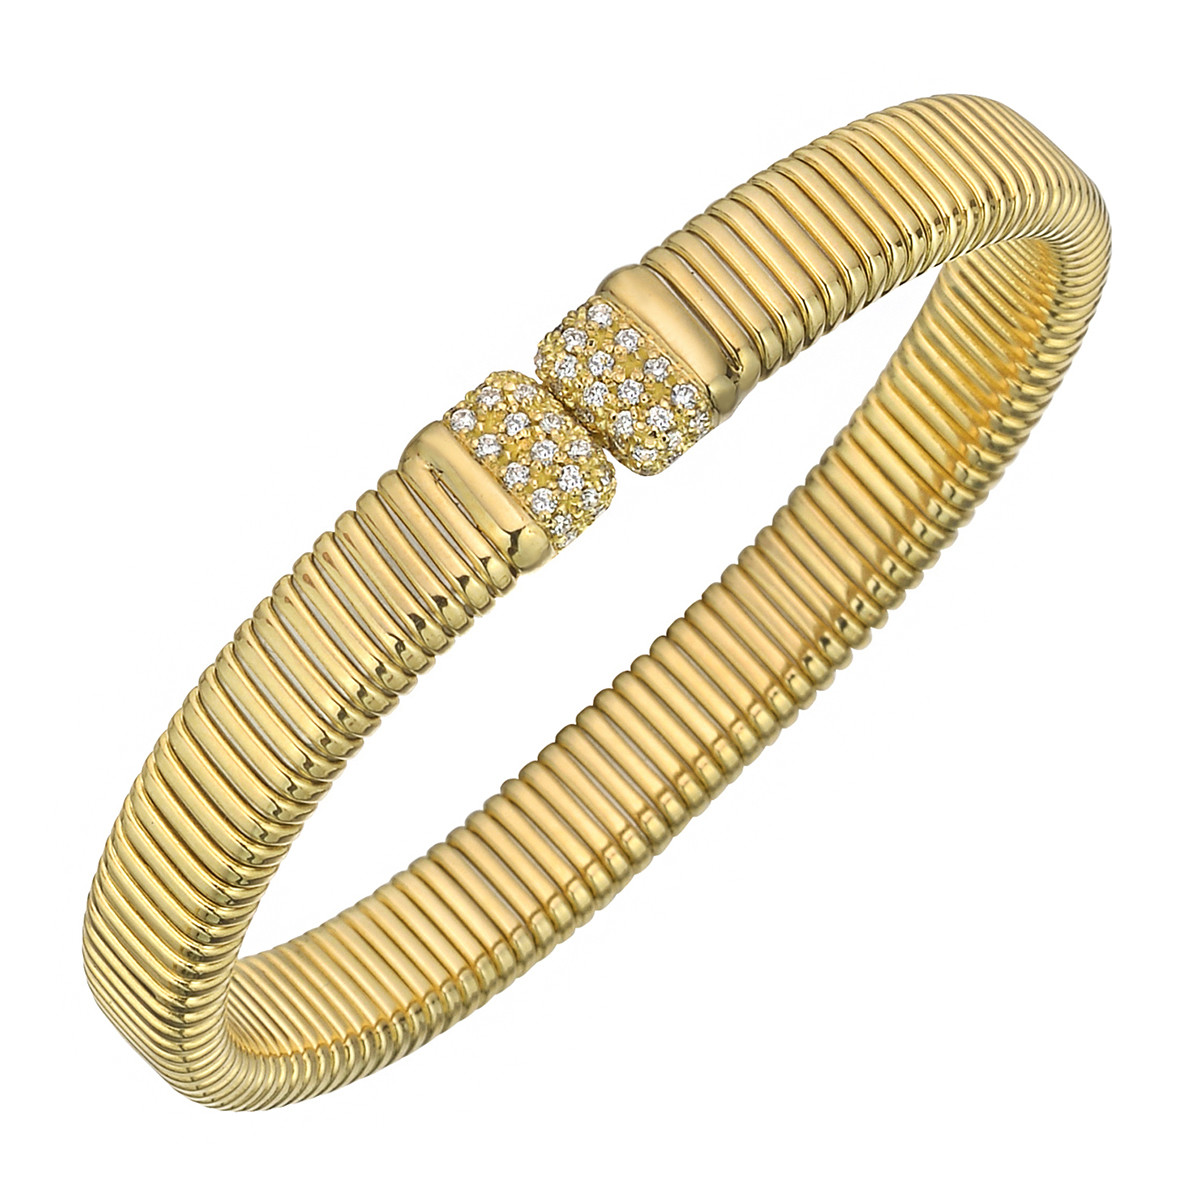 18k Yellow Gold & Diamond Tubogas Cuff